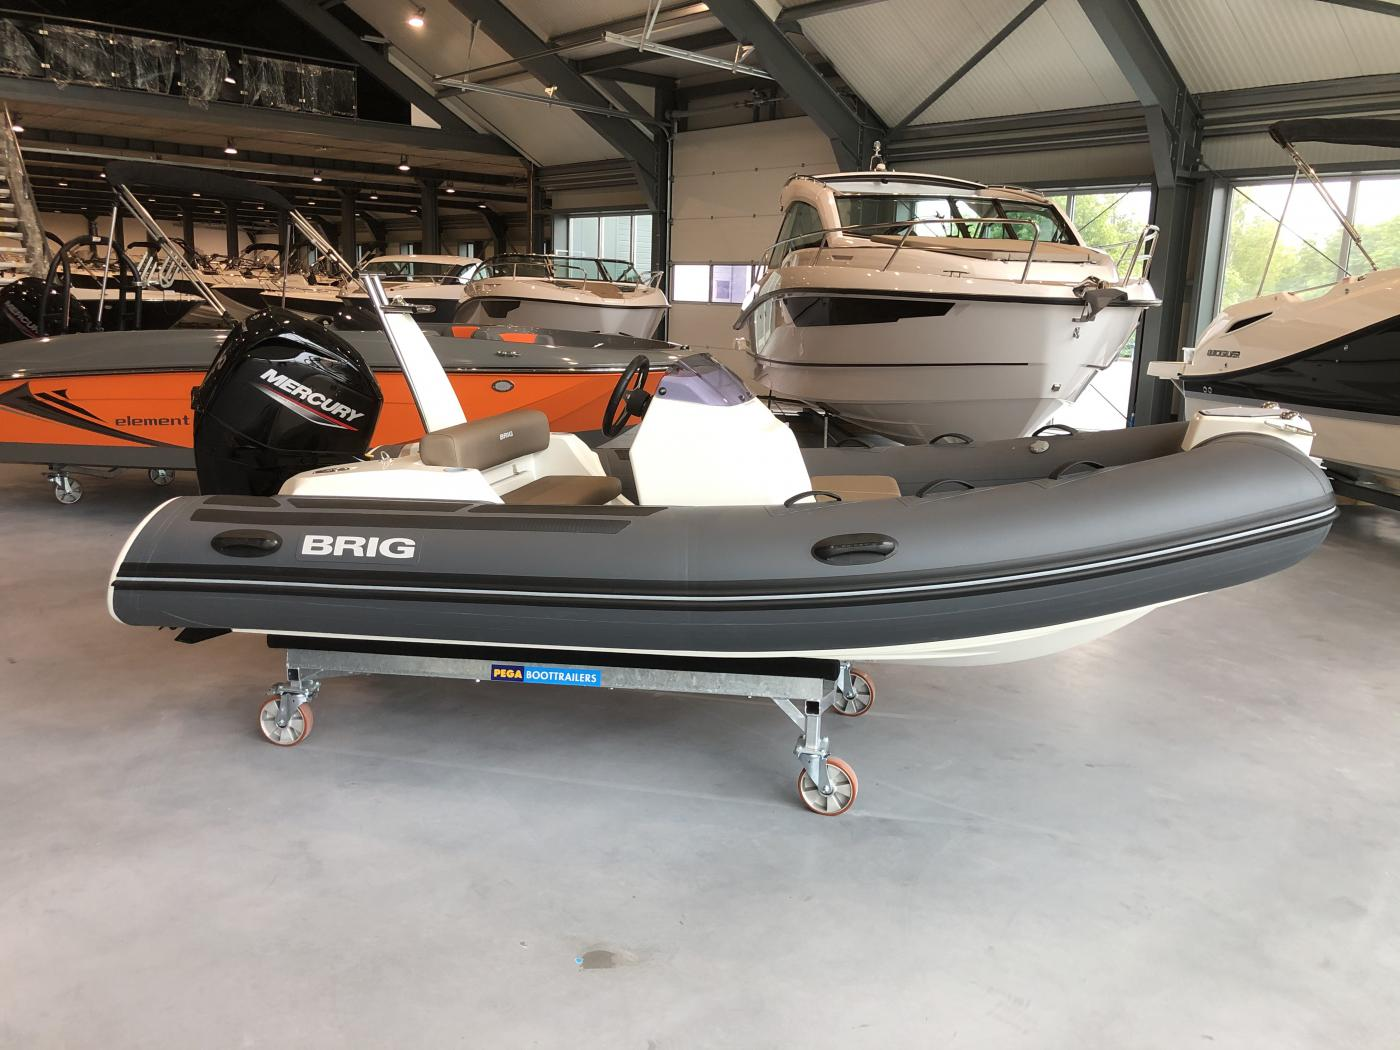 Te koop Brig  Eagle 4 Rubberboten | Bomert Watersport